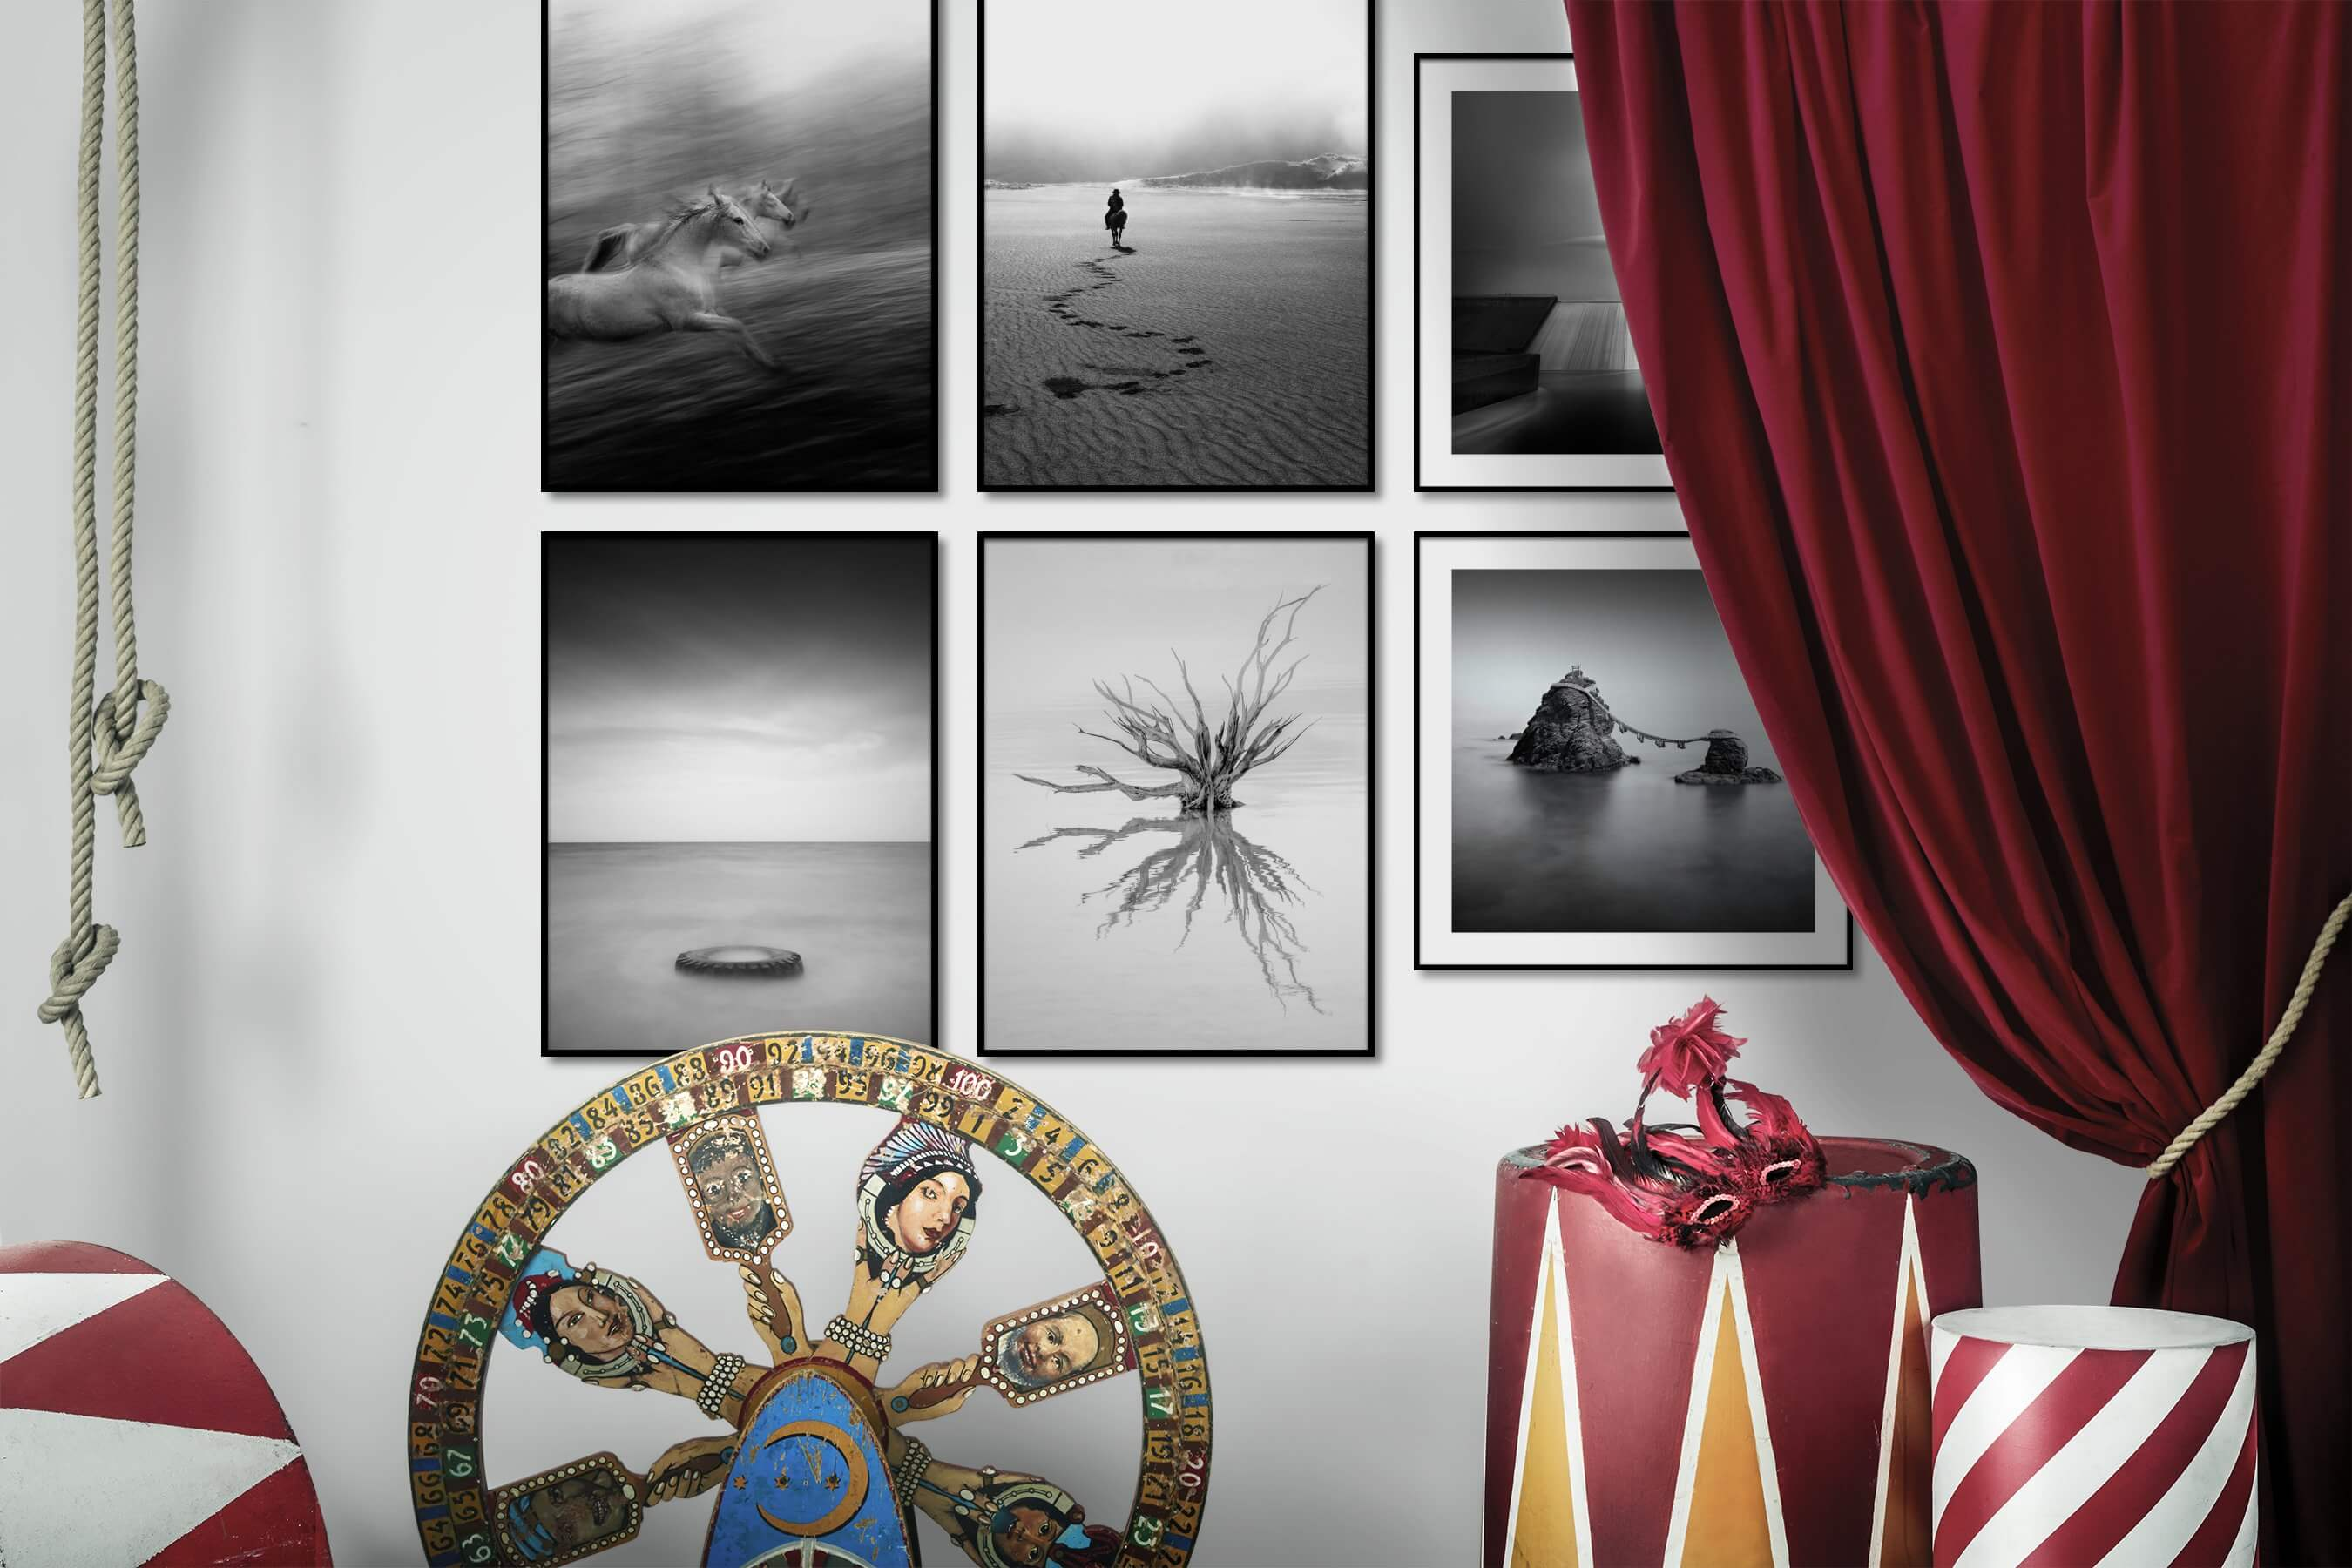 Gallery wall idea with six framed pictures arranged on a wall depicting Black & White, For the Moderate, Animals, Country Life, Mindfulness, and For the Minimalist